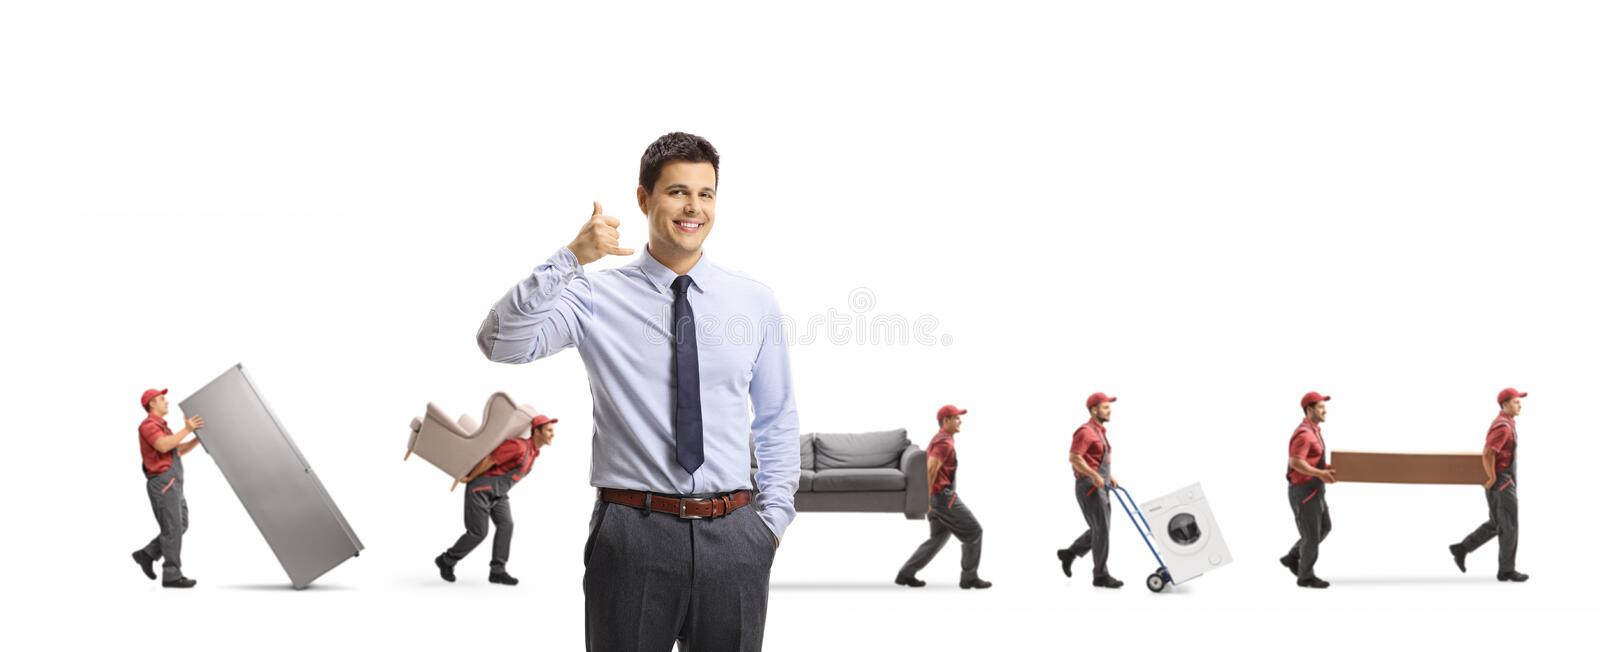 Manager of a removal company gesturing call us sign and workers carrying furniture and appliences royalty free stock photo